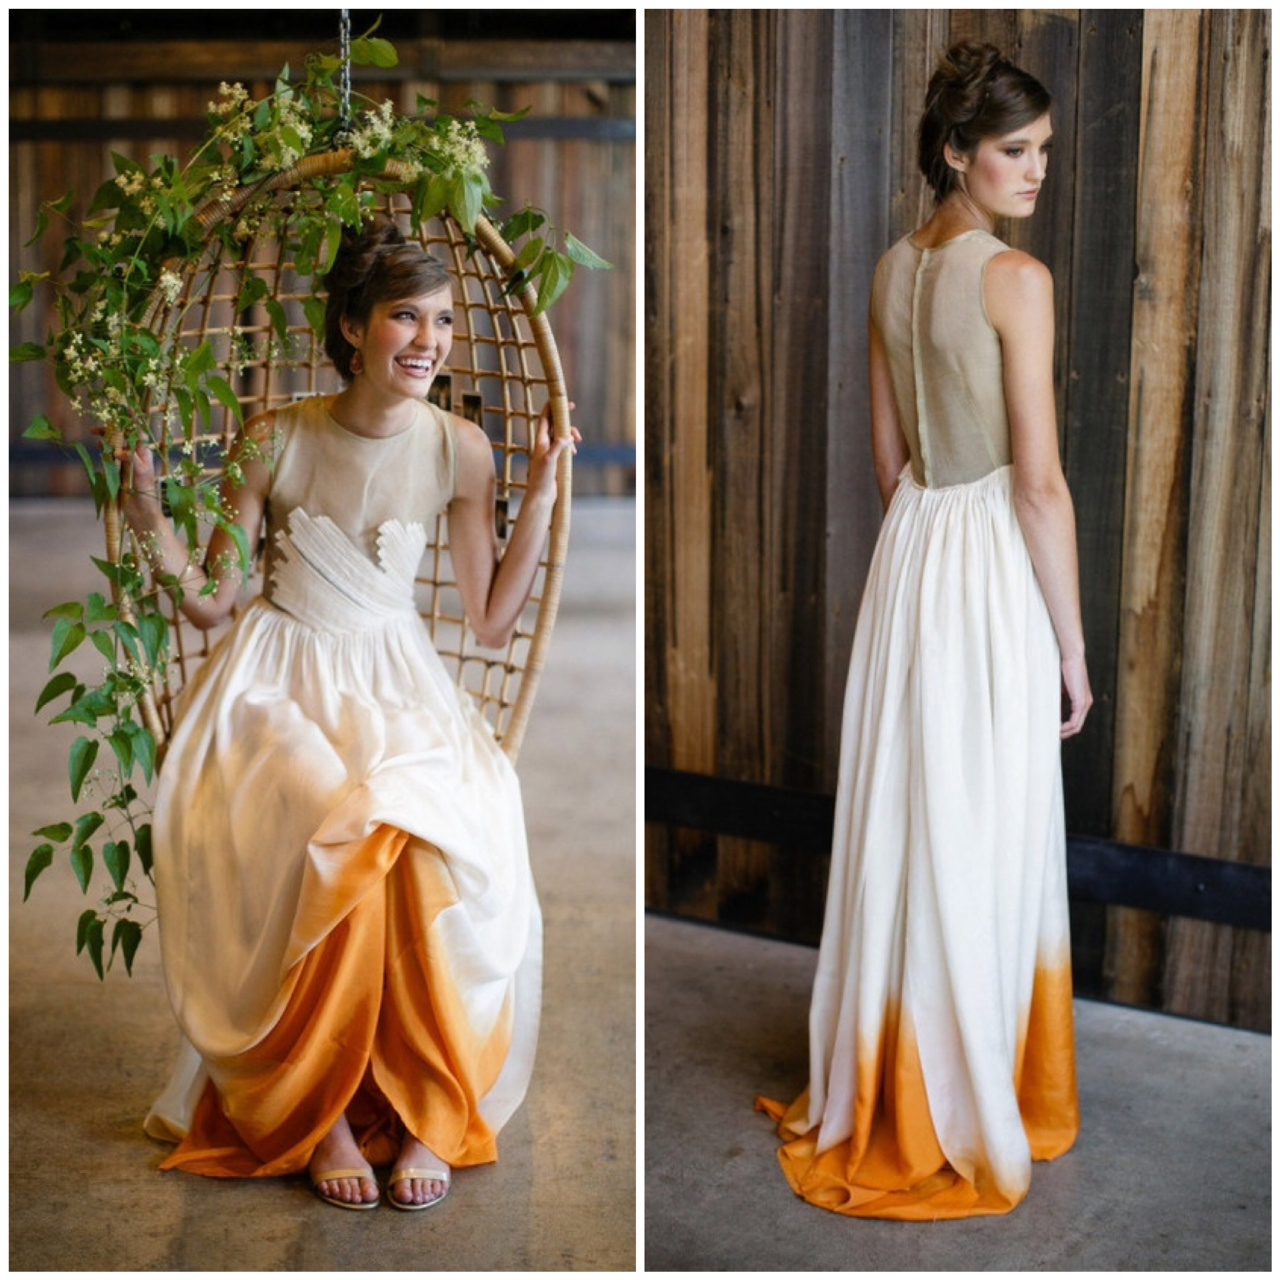 Wedding Dresses: 21 Unique Wedding Dresses Ideas For Brides, Who Don't Want